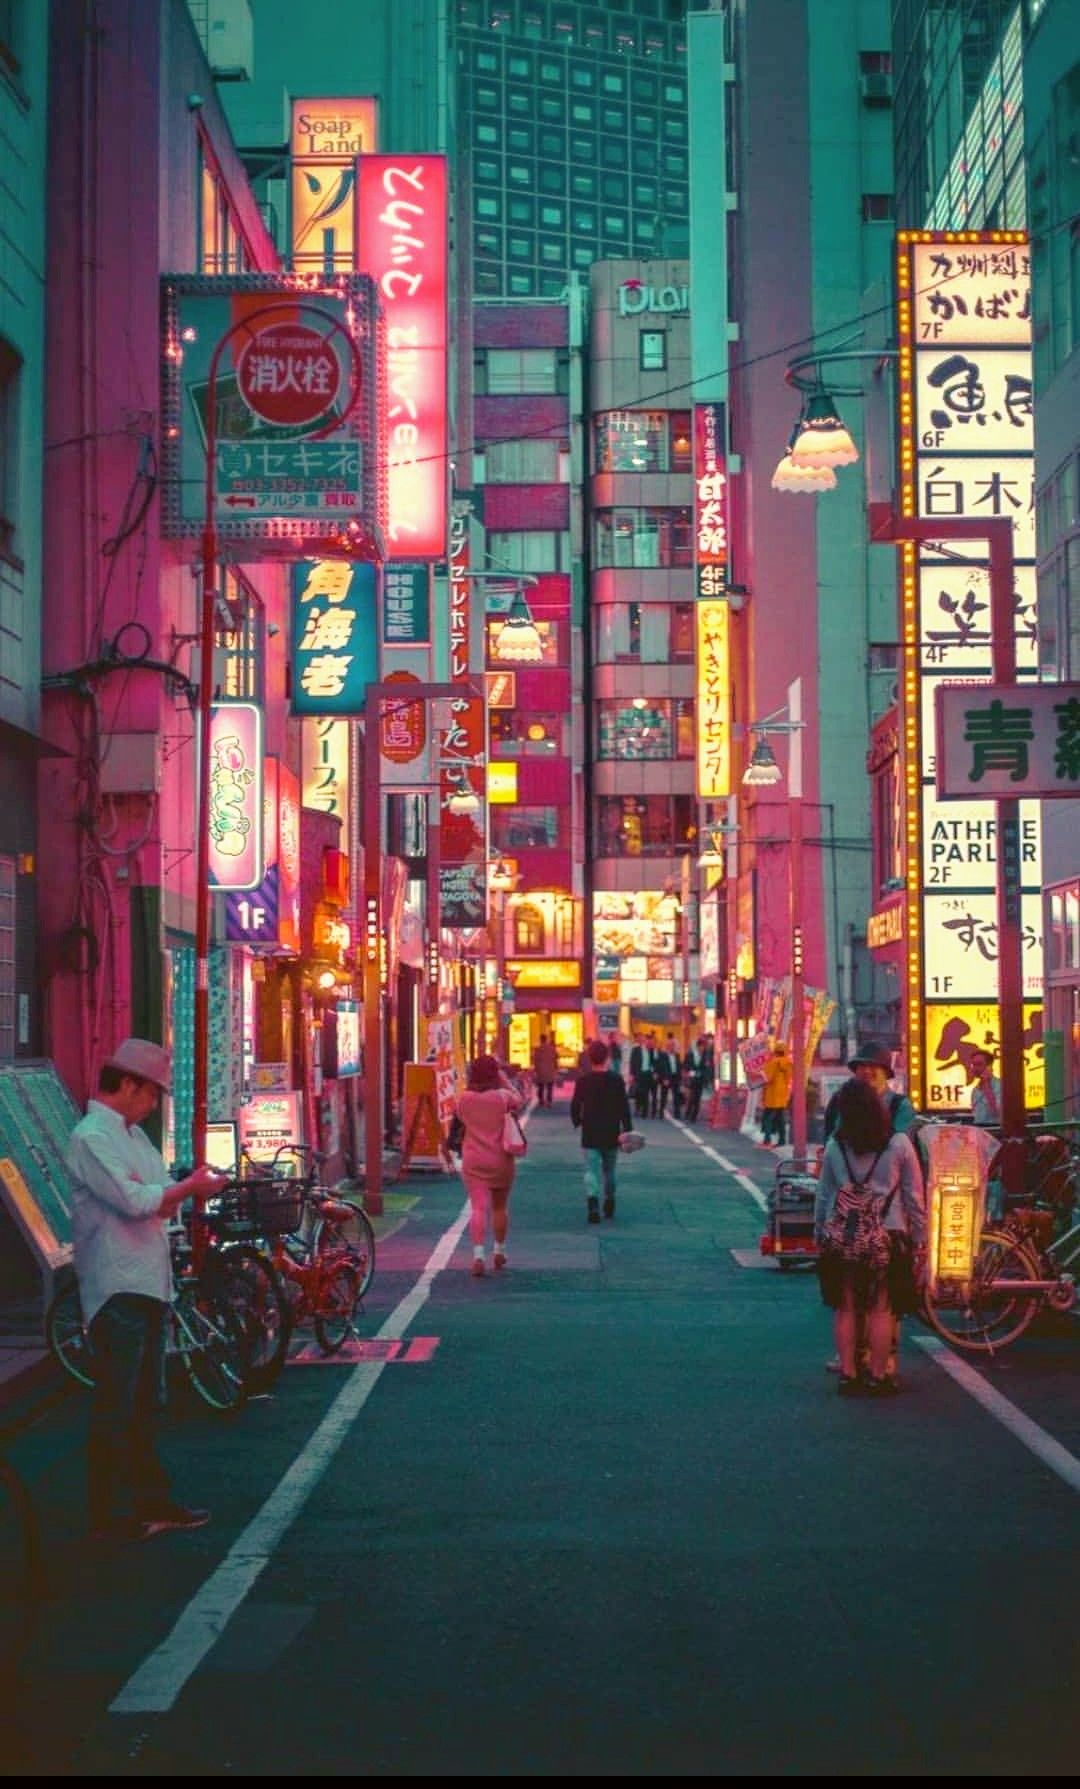 Pin By S S On Wanderlust City Aesthetic Cyberpunk City Anime Scenery